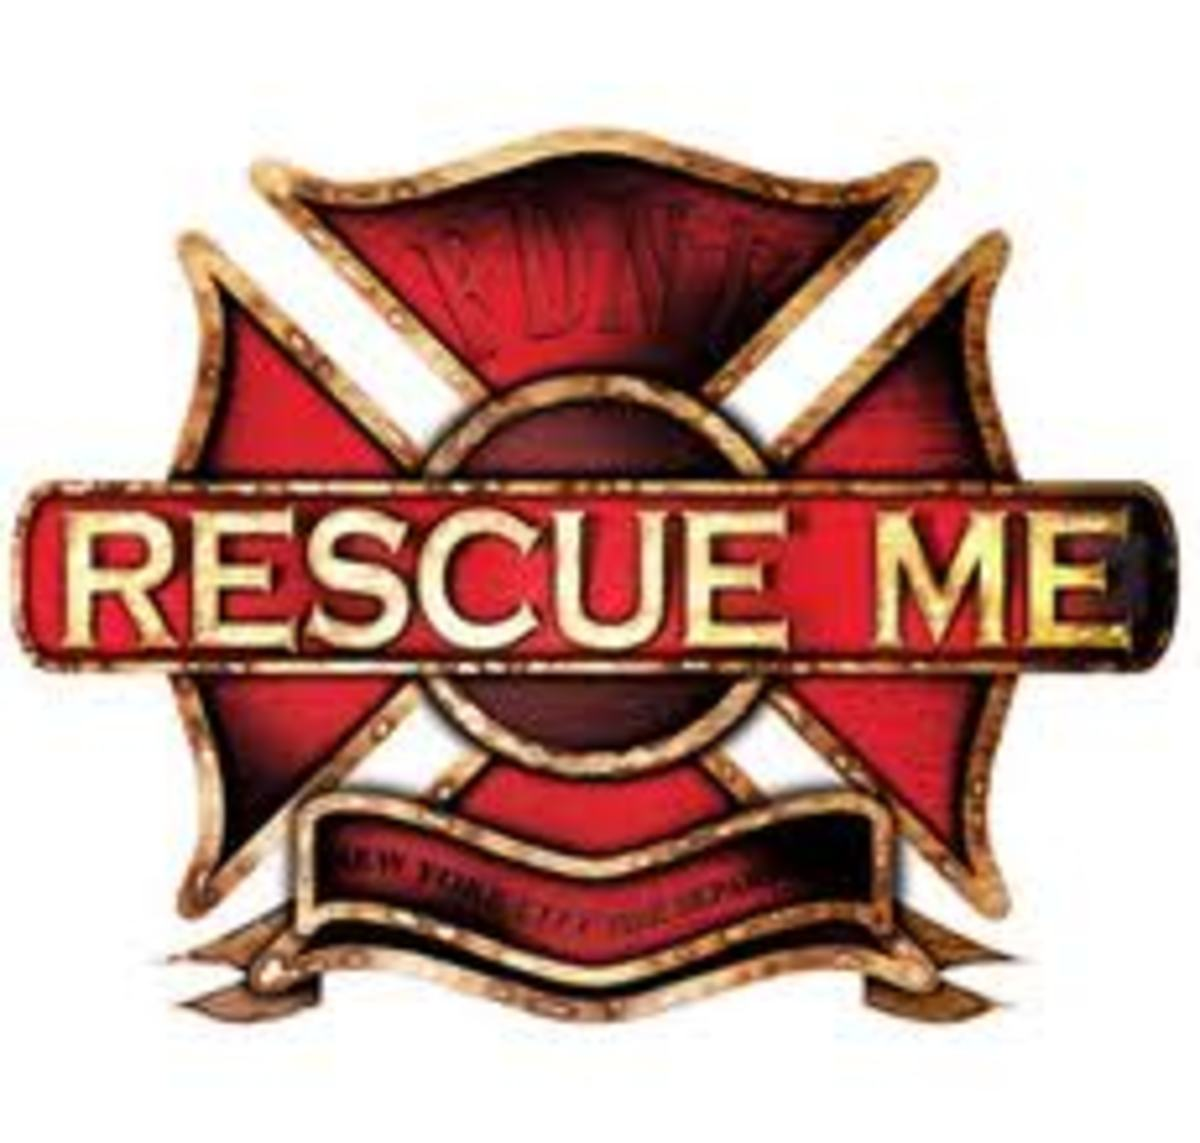 The Women of Rescue Me